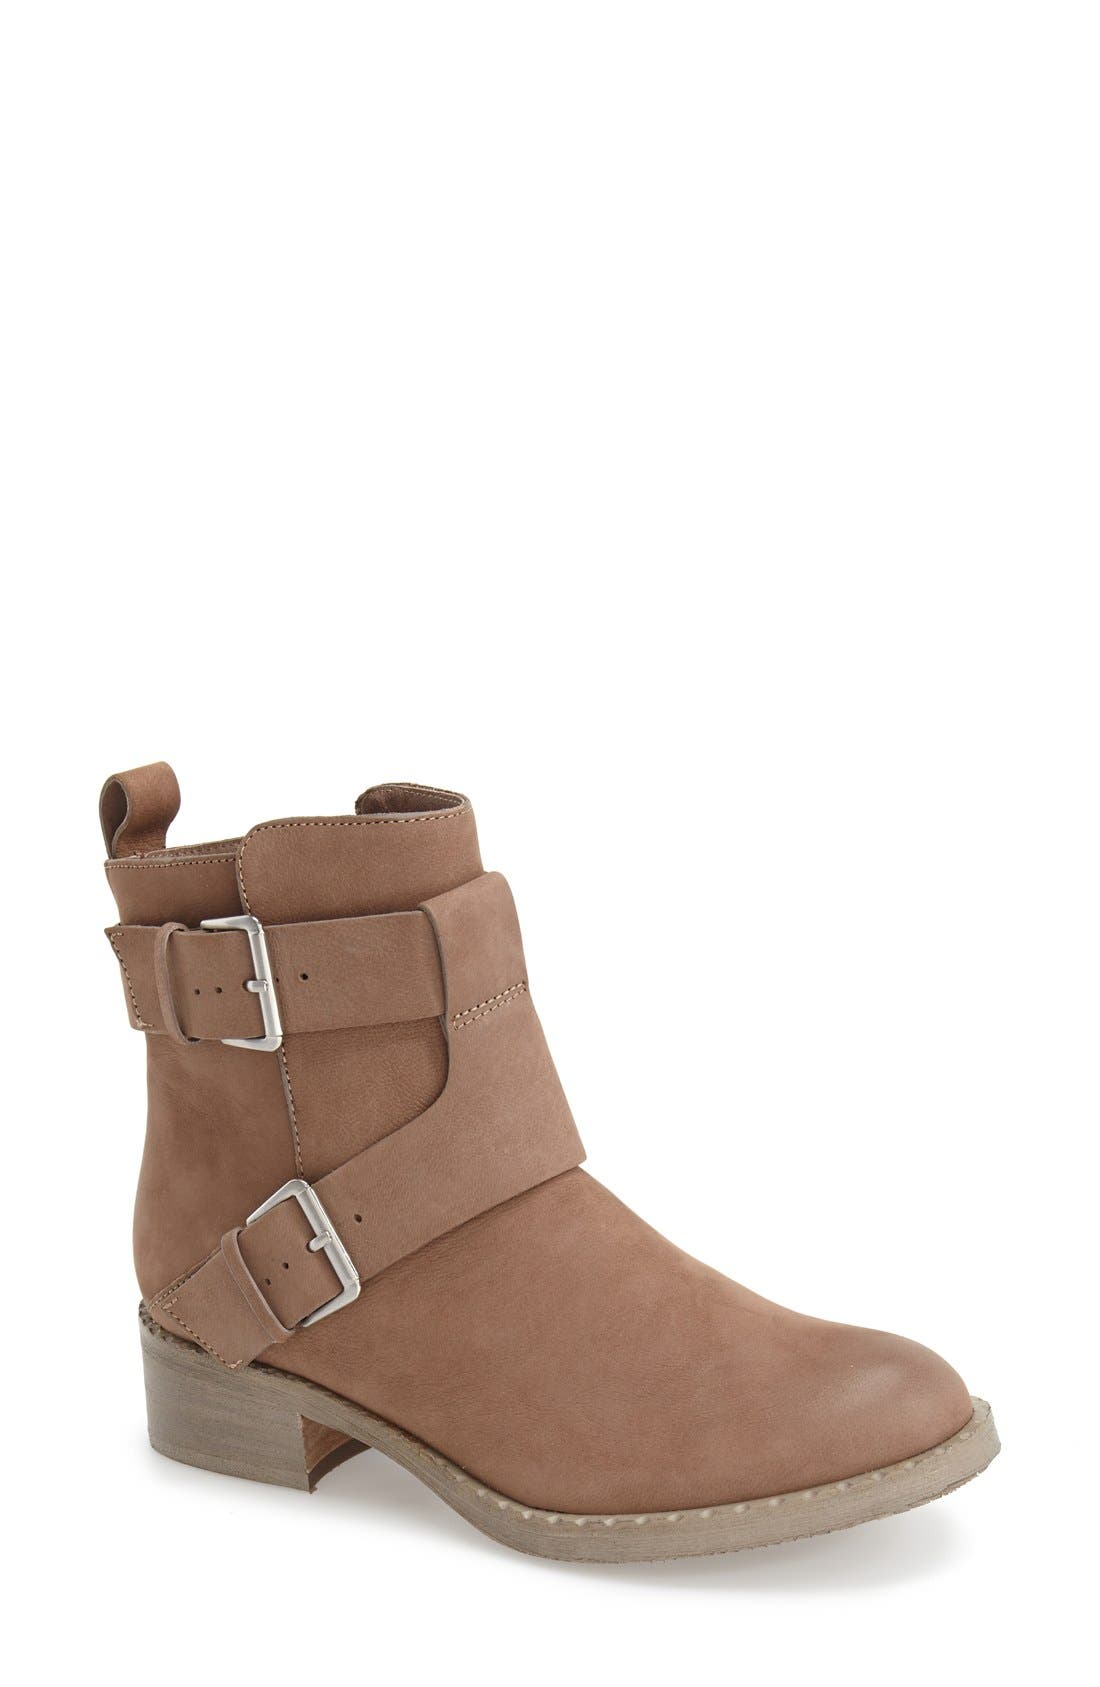 by Kenneth Cole 'Best Of' Boot,                         Main,                         color, Beige Nubuck